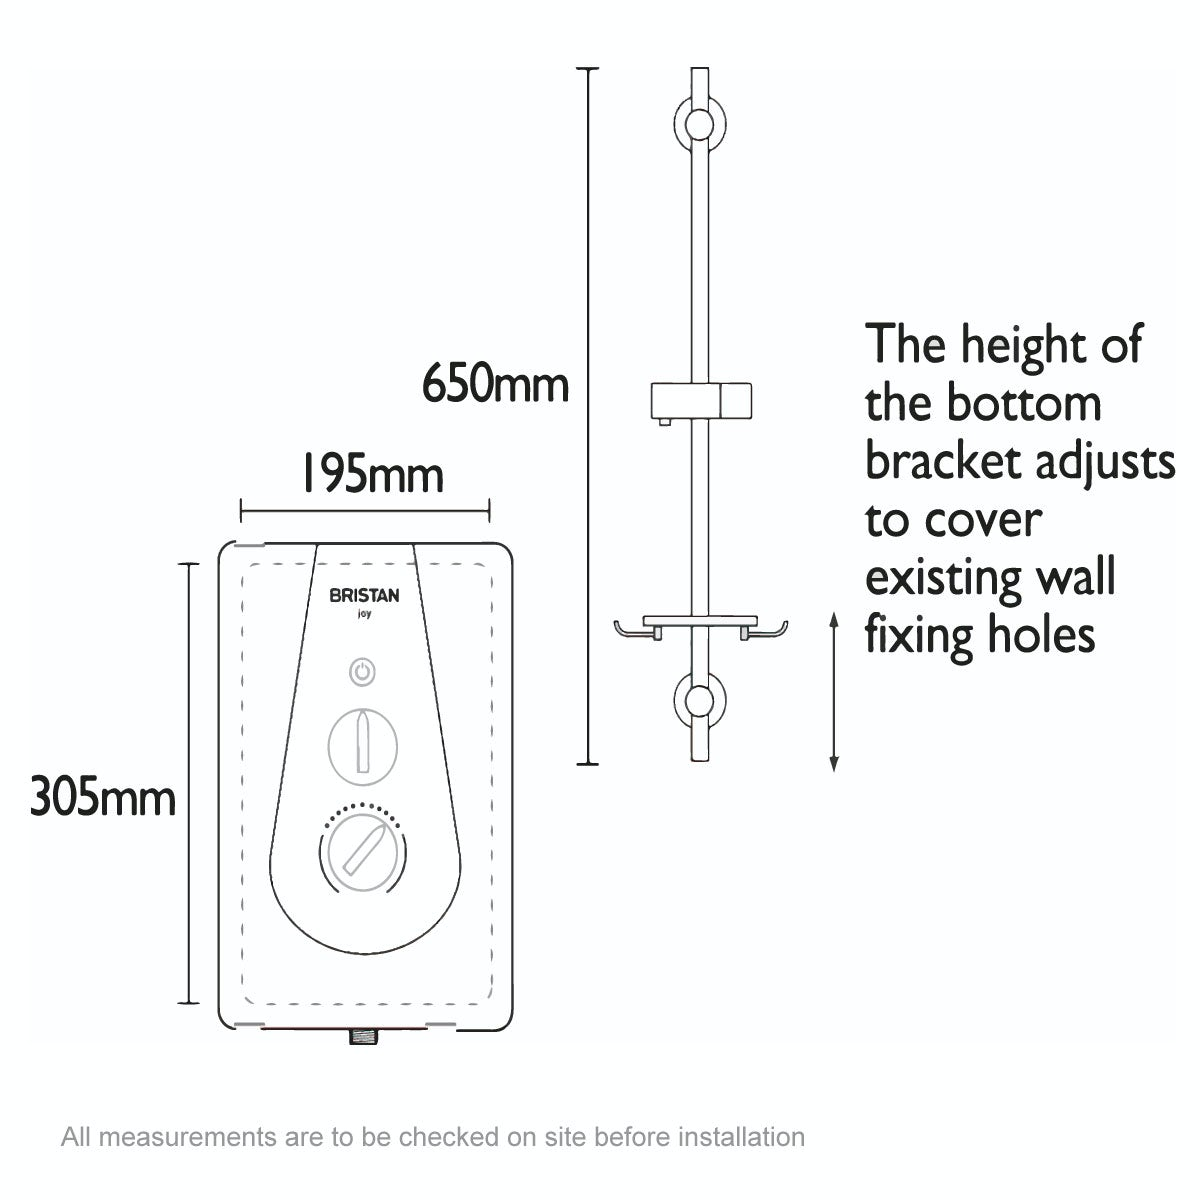 Dimensions for Bristan Joy 9.5kw thermostatic electric shower white